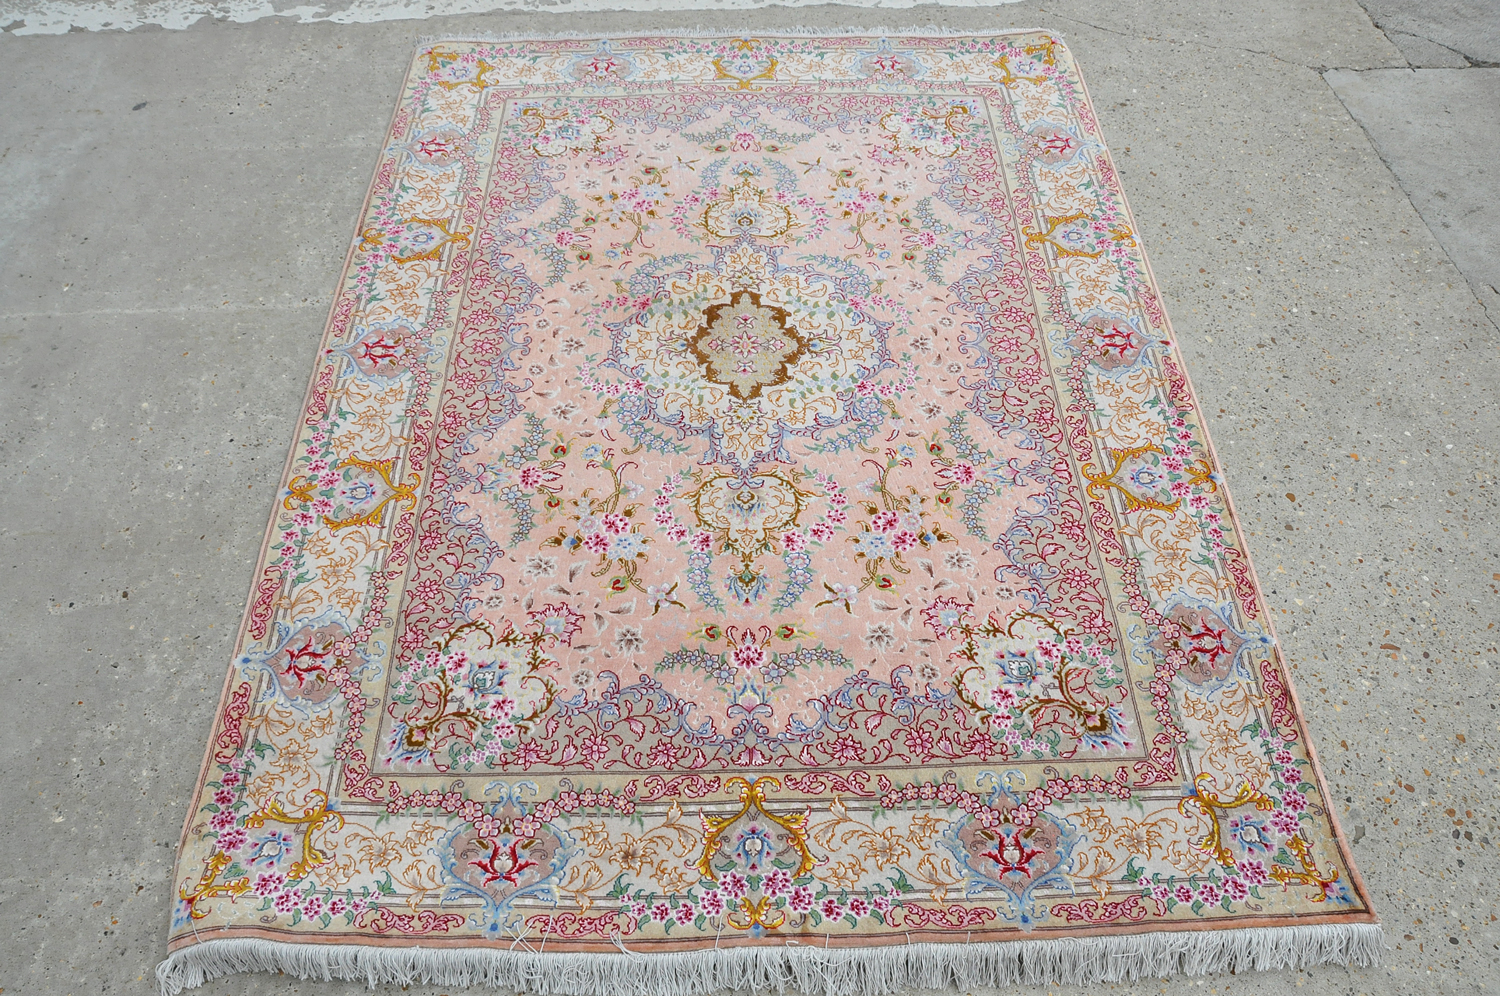 Cleaning-process-karimi-rug-07.jpg